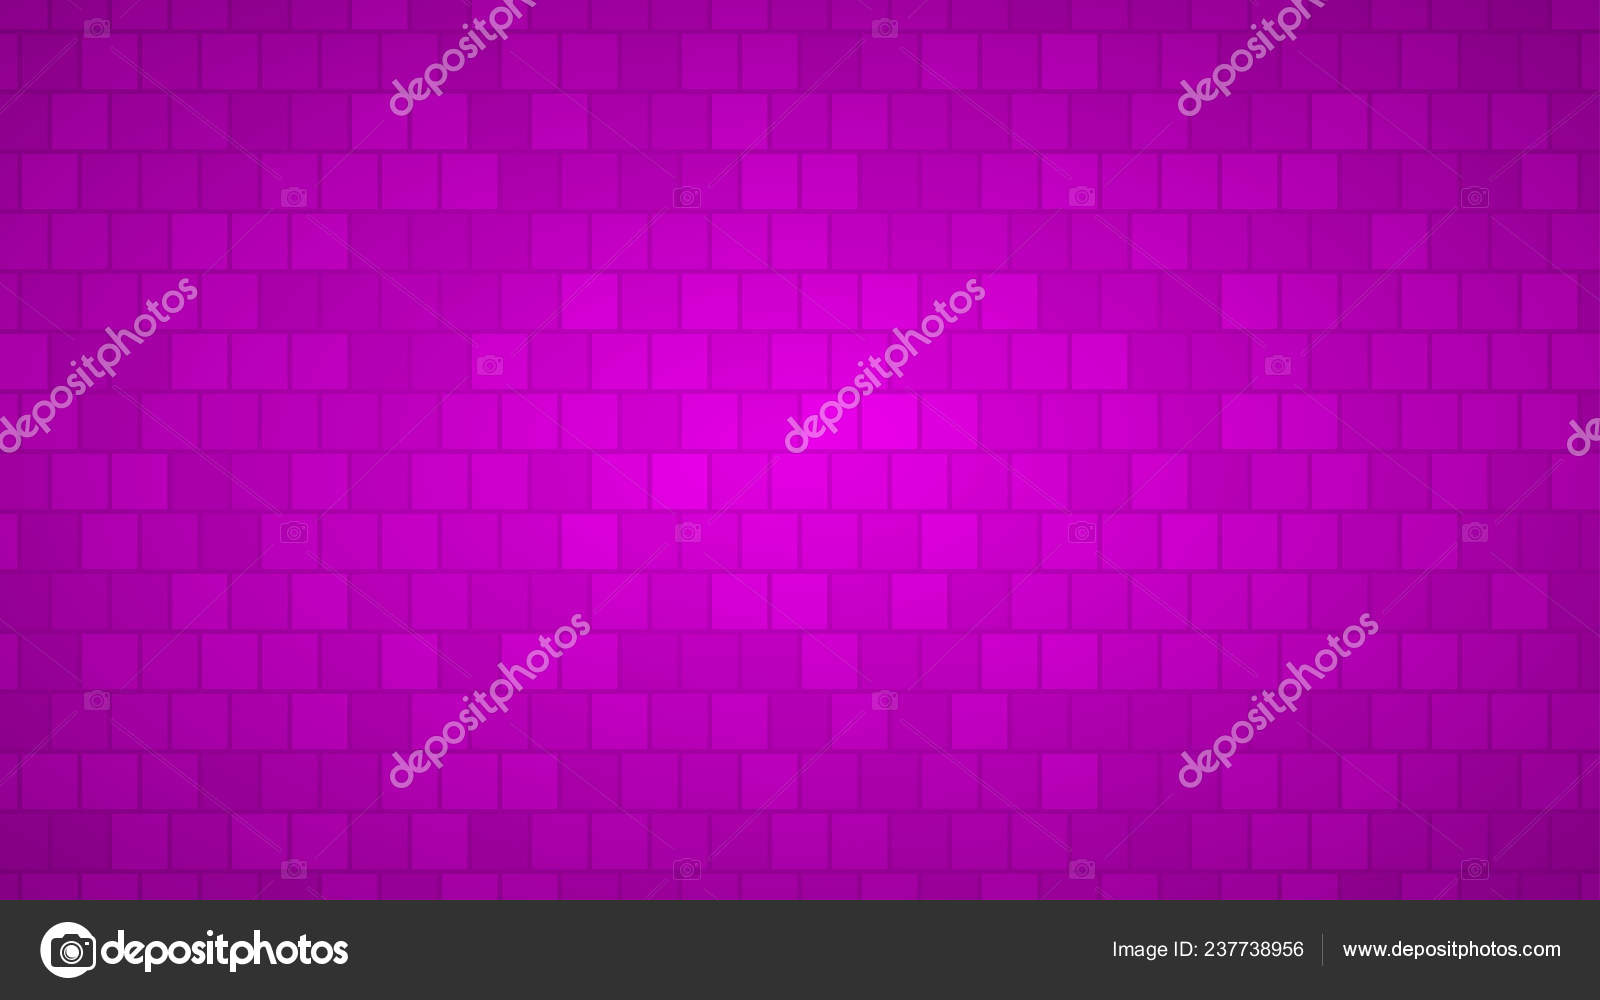 Abstract Background Squares Shades Purple Colors Stock Vector C Alsstocks450 237738956